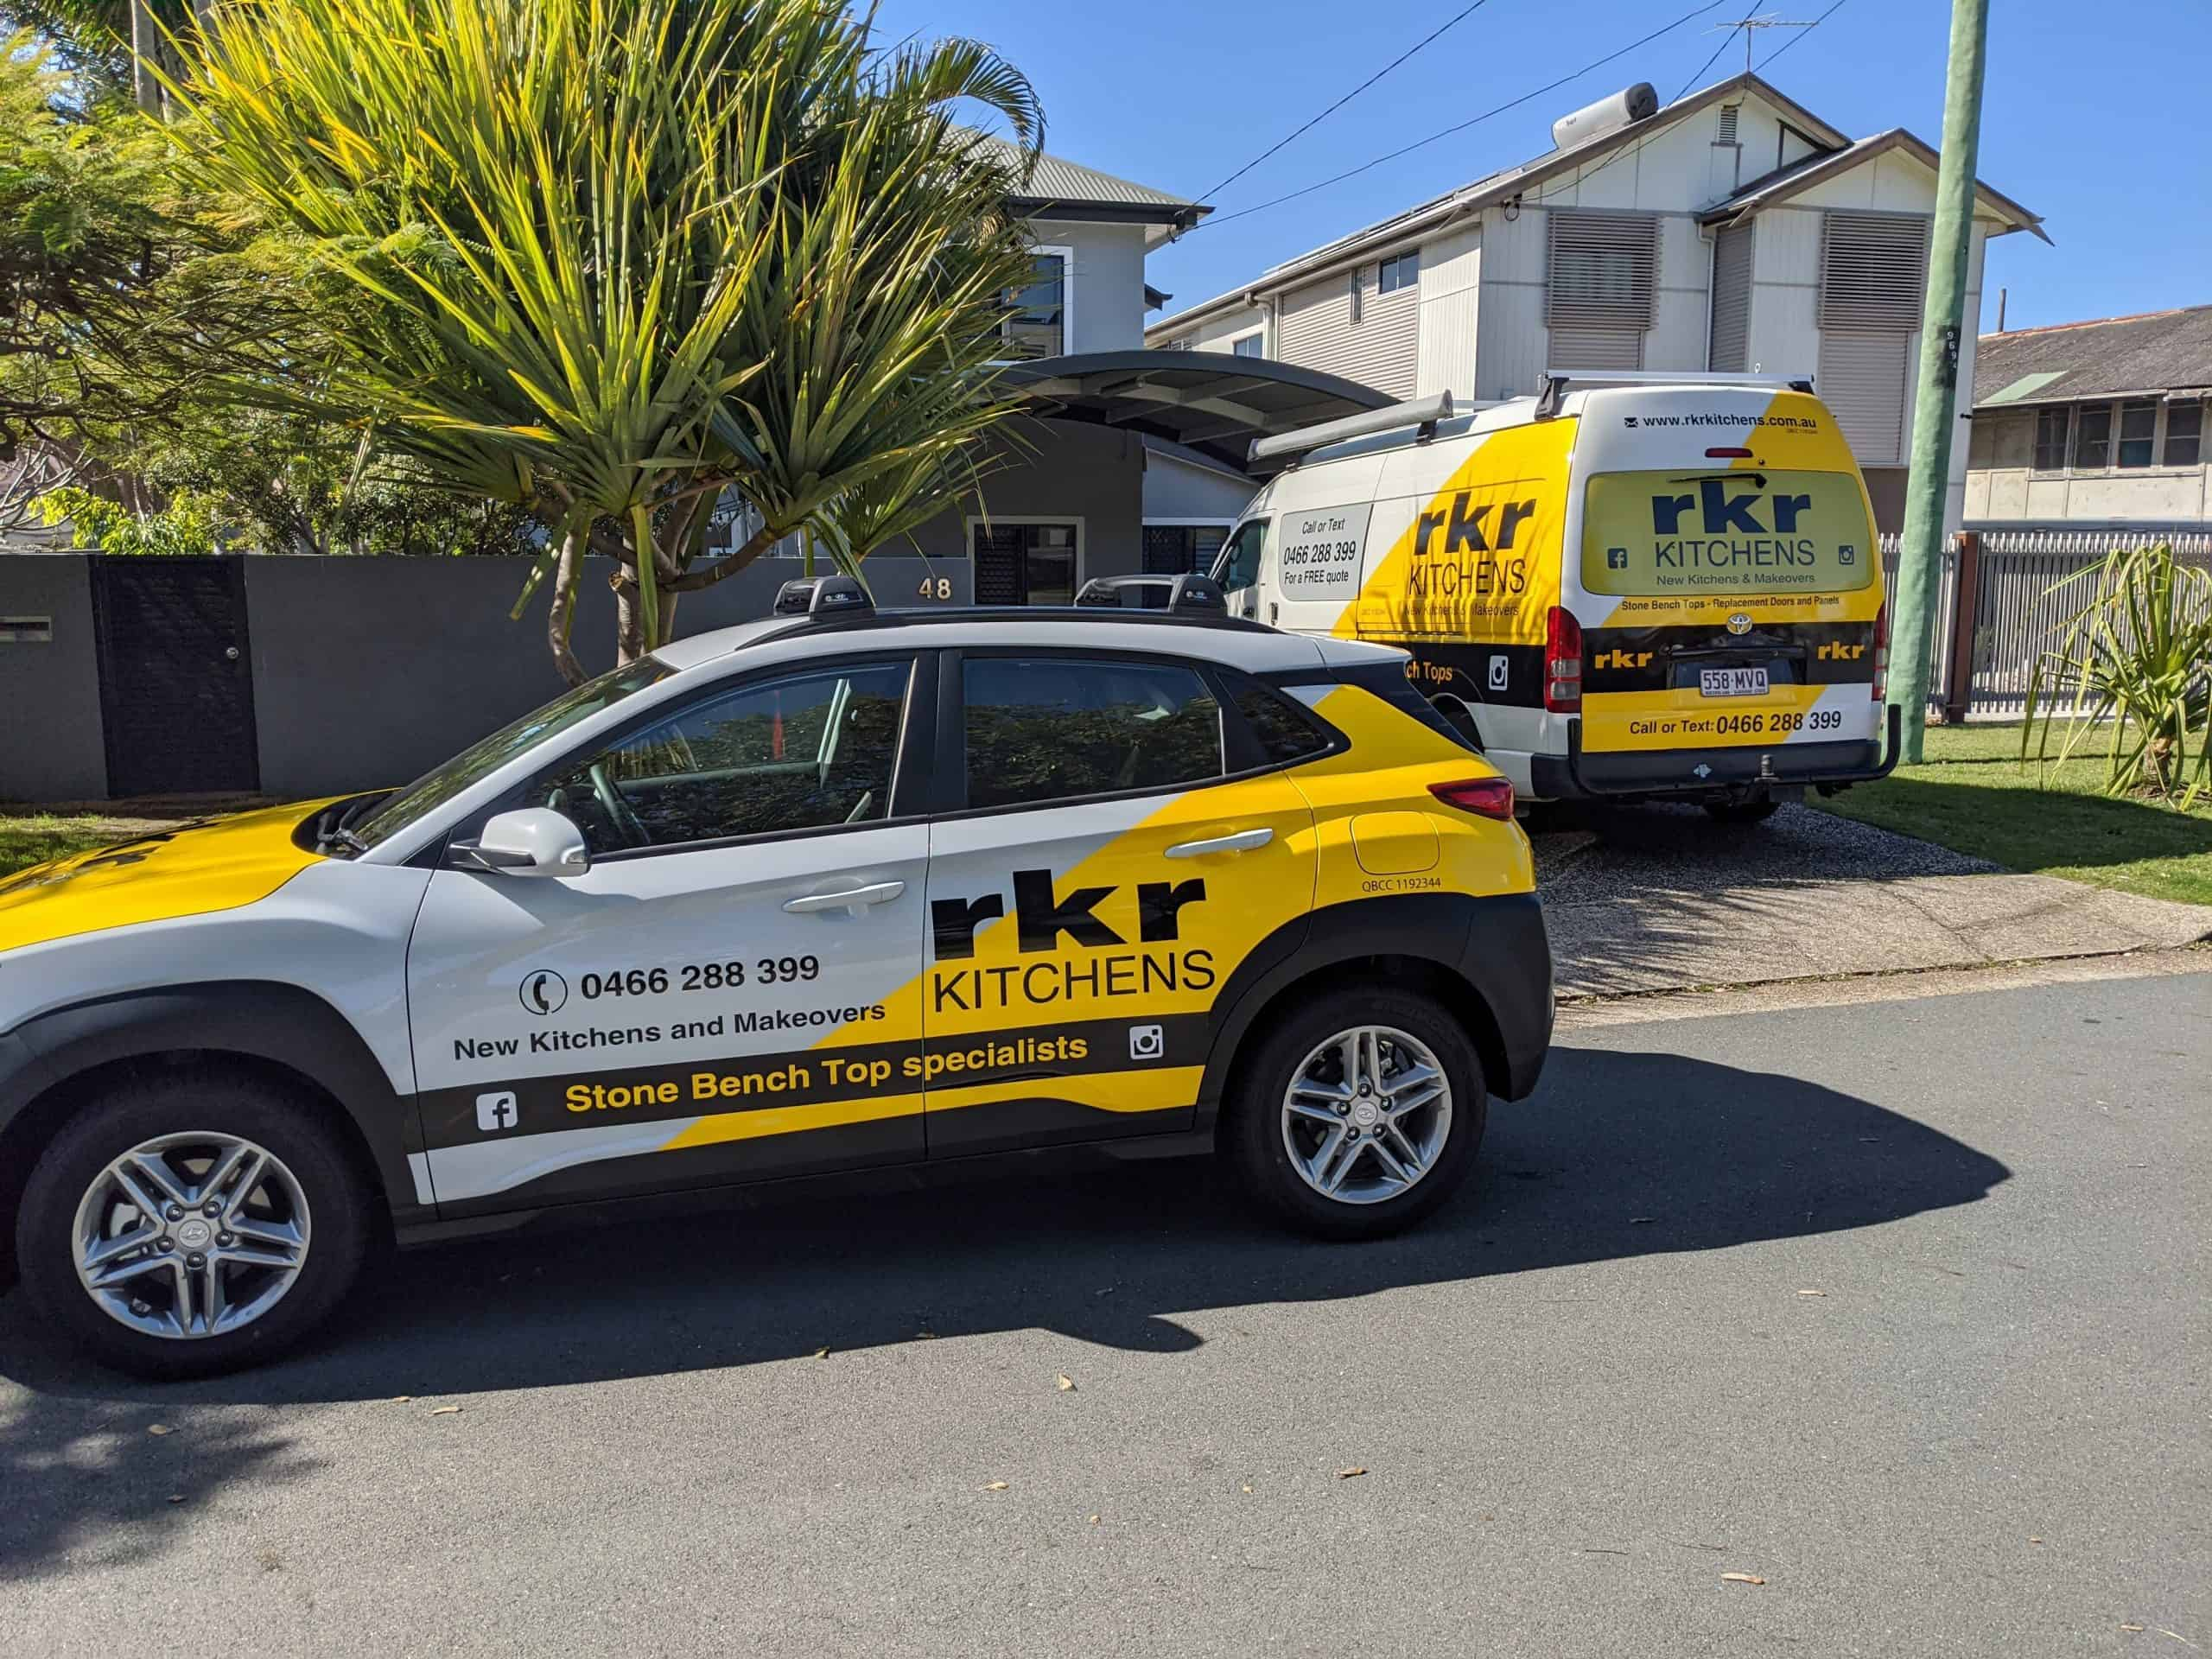 About, stone benchtops and kitchens rkr kitchens vehicles